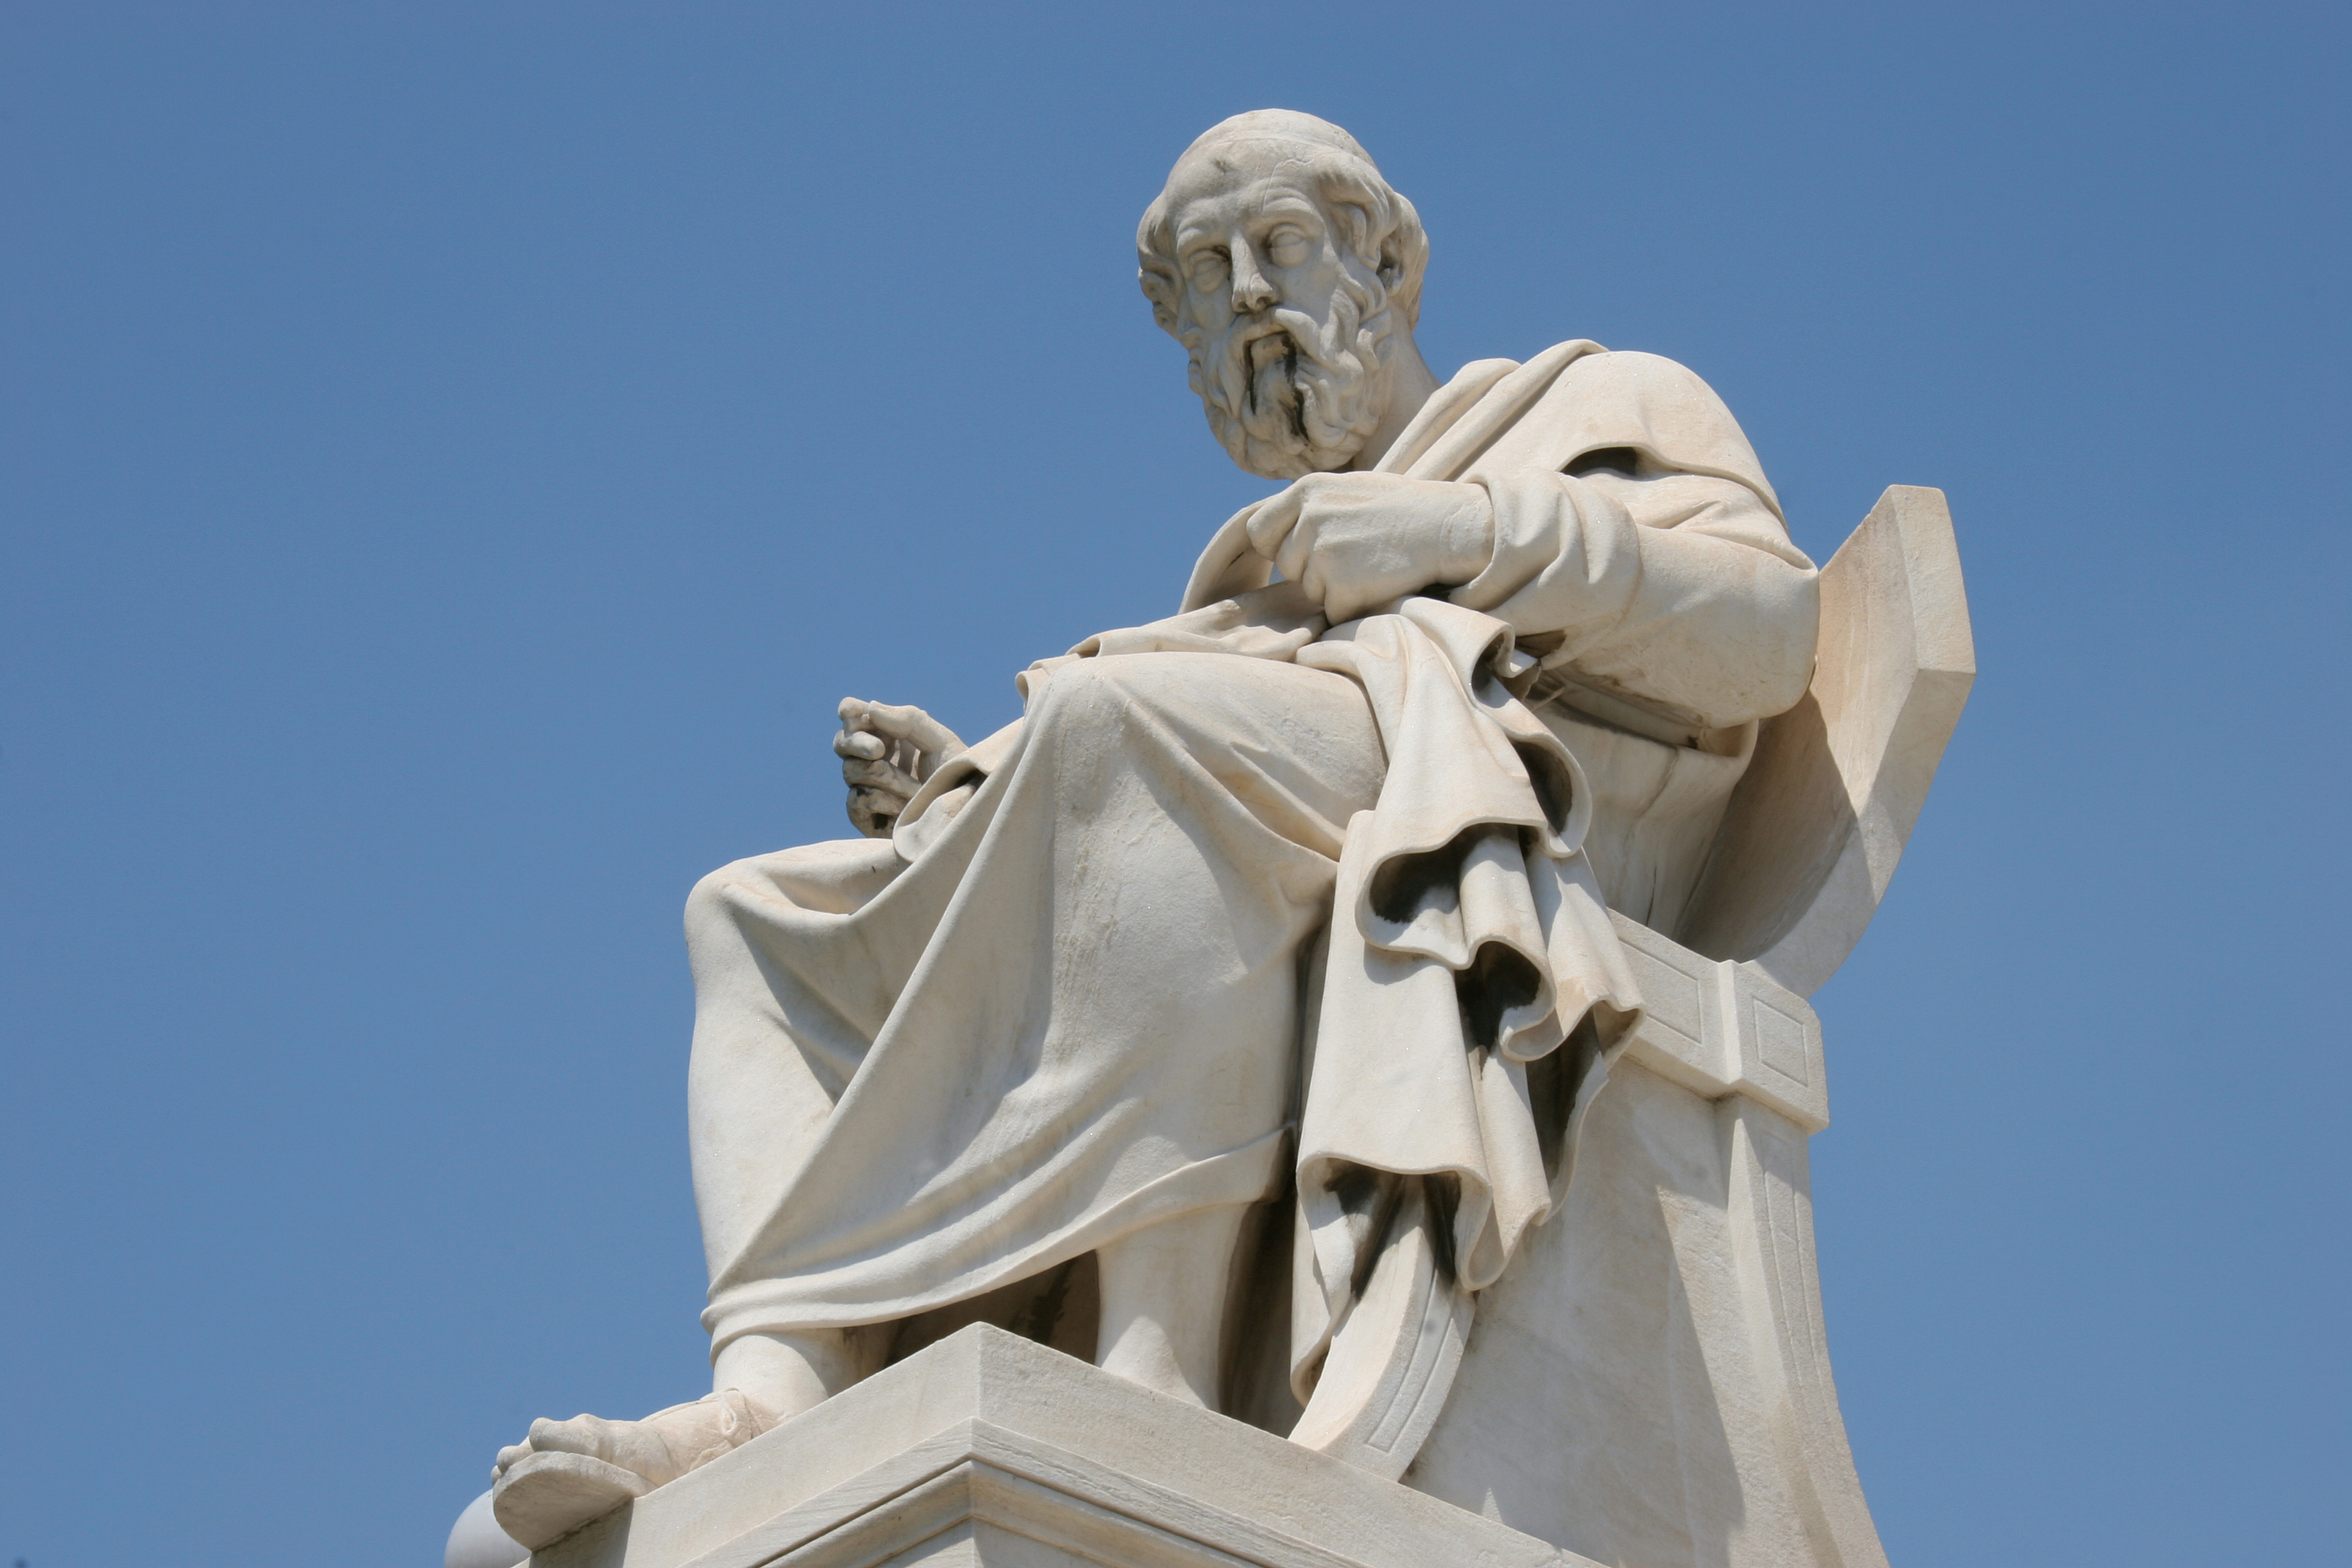 Aristotle (384-322 BC), Classical Greek Philosopher, A student of Plato and teacher of Alexander the Great, Statue of Aristotle at the Athens Academy, Athens, Central Greece, Attica, Europe.